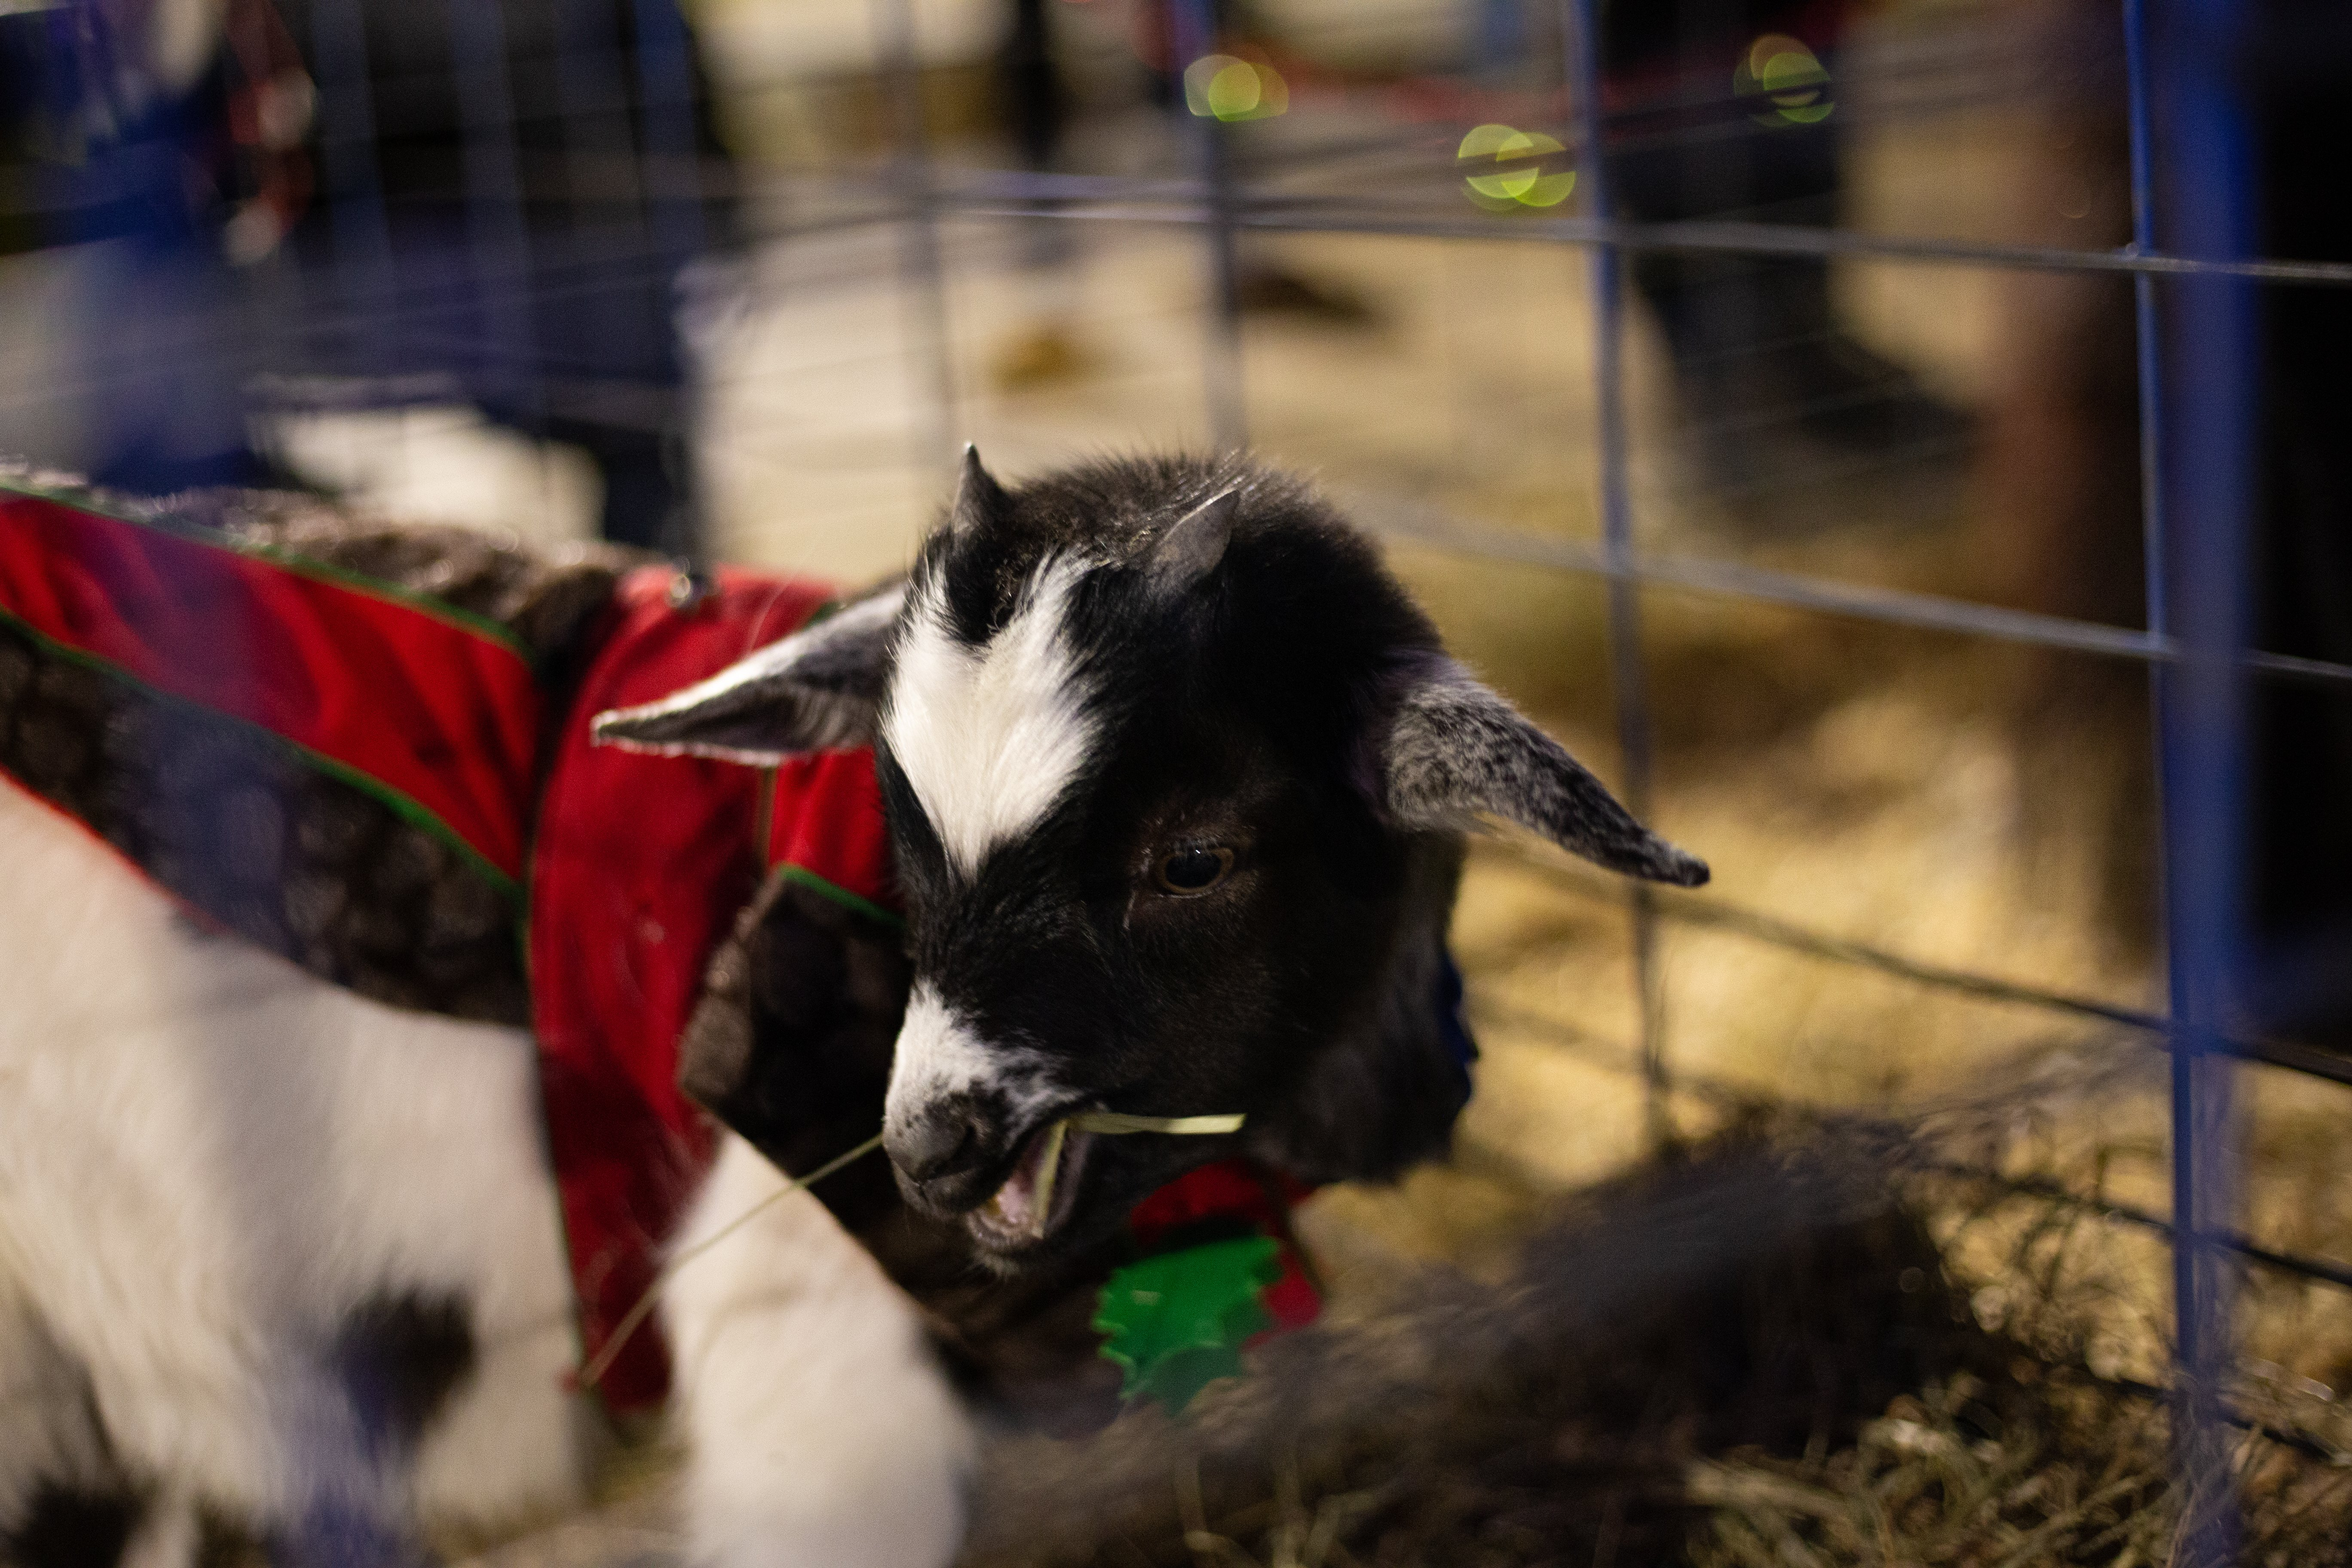 A baby goat taking a snack break during the mini petting zoo.